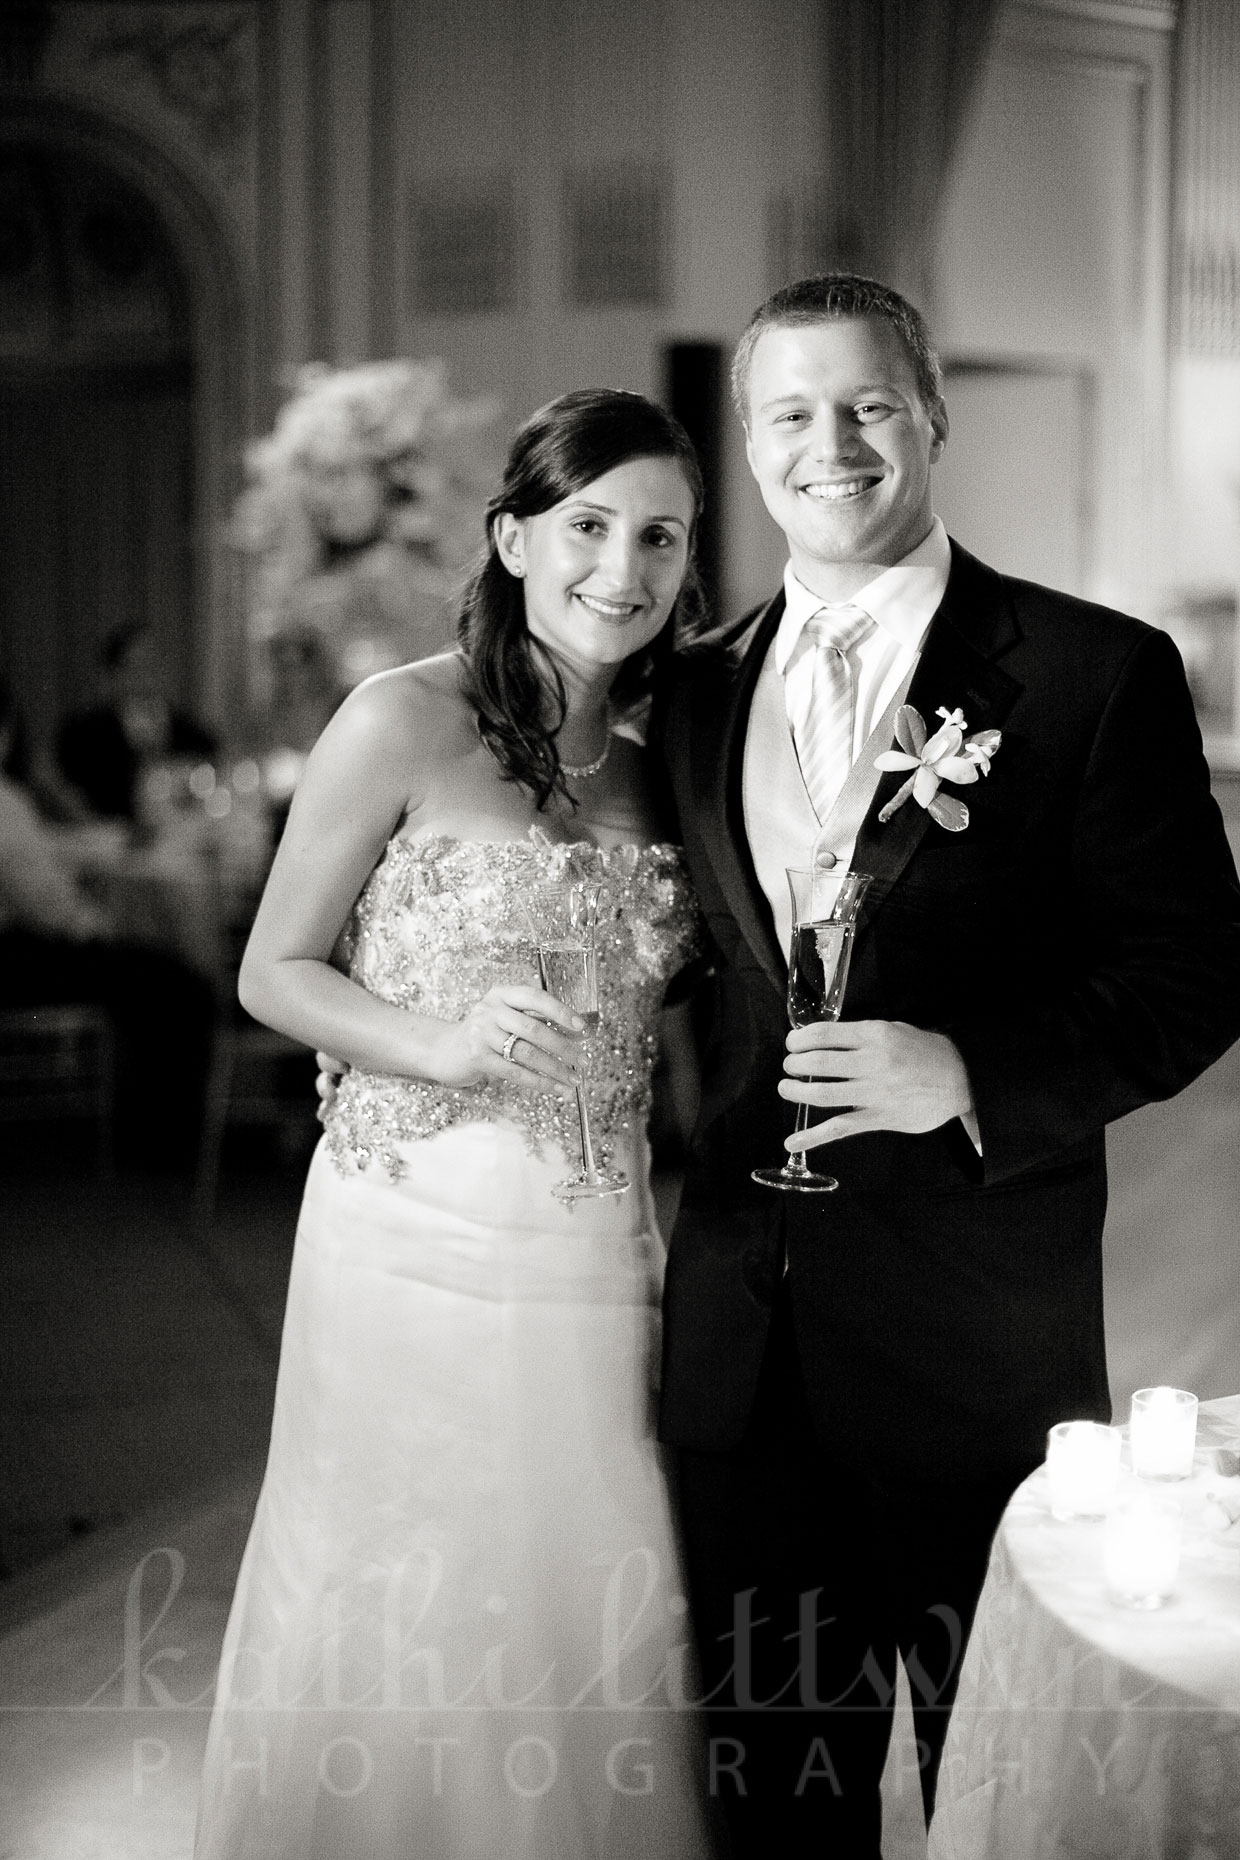 Kathi_Littwin_Photography_Plaza_NYC_Wedding-2103